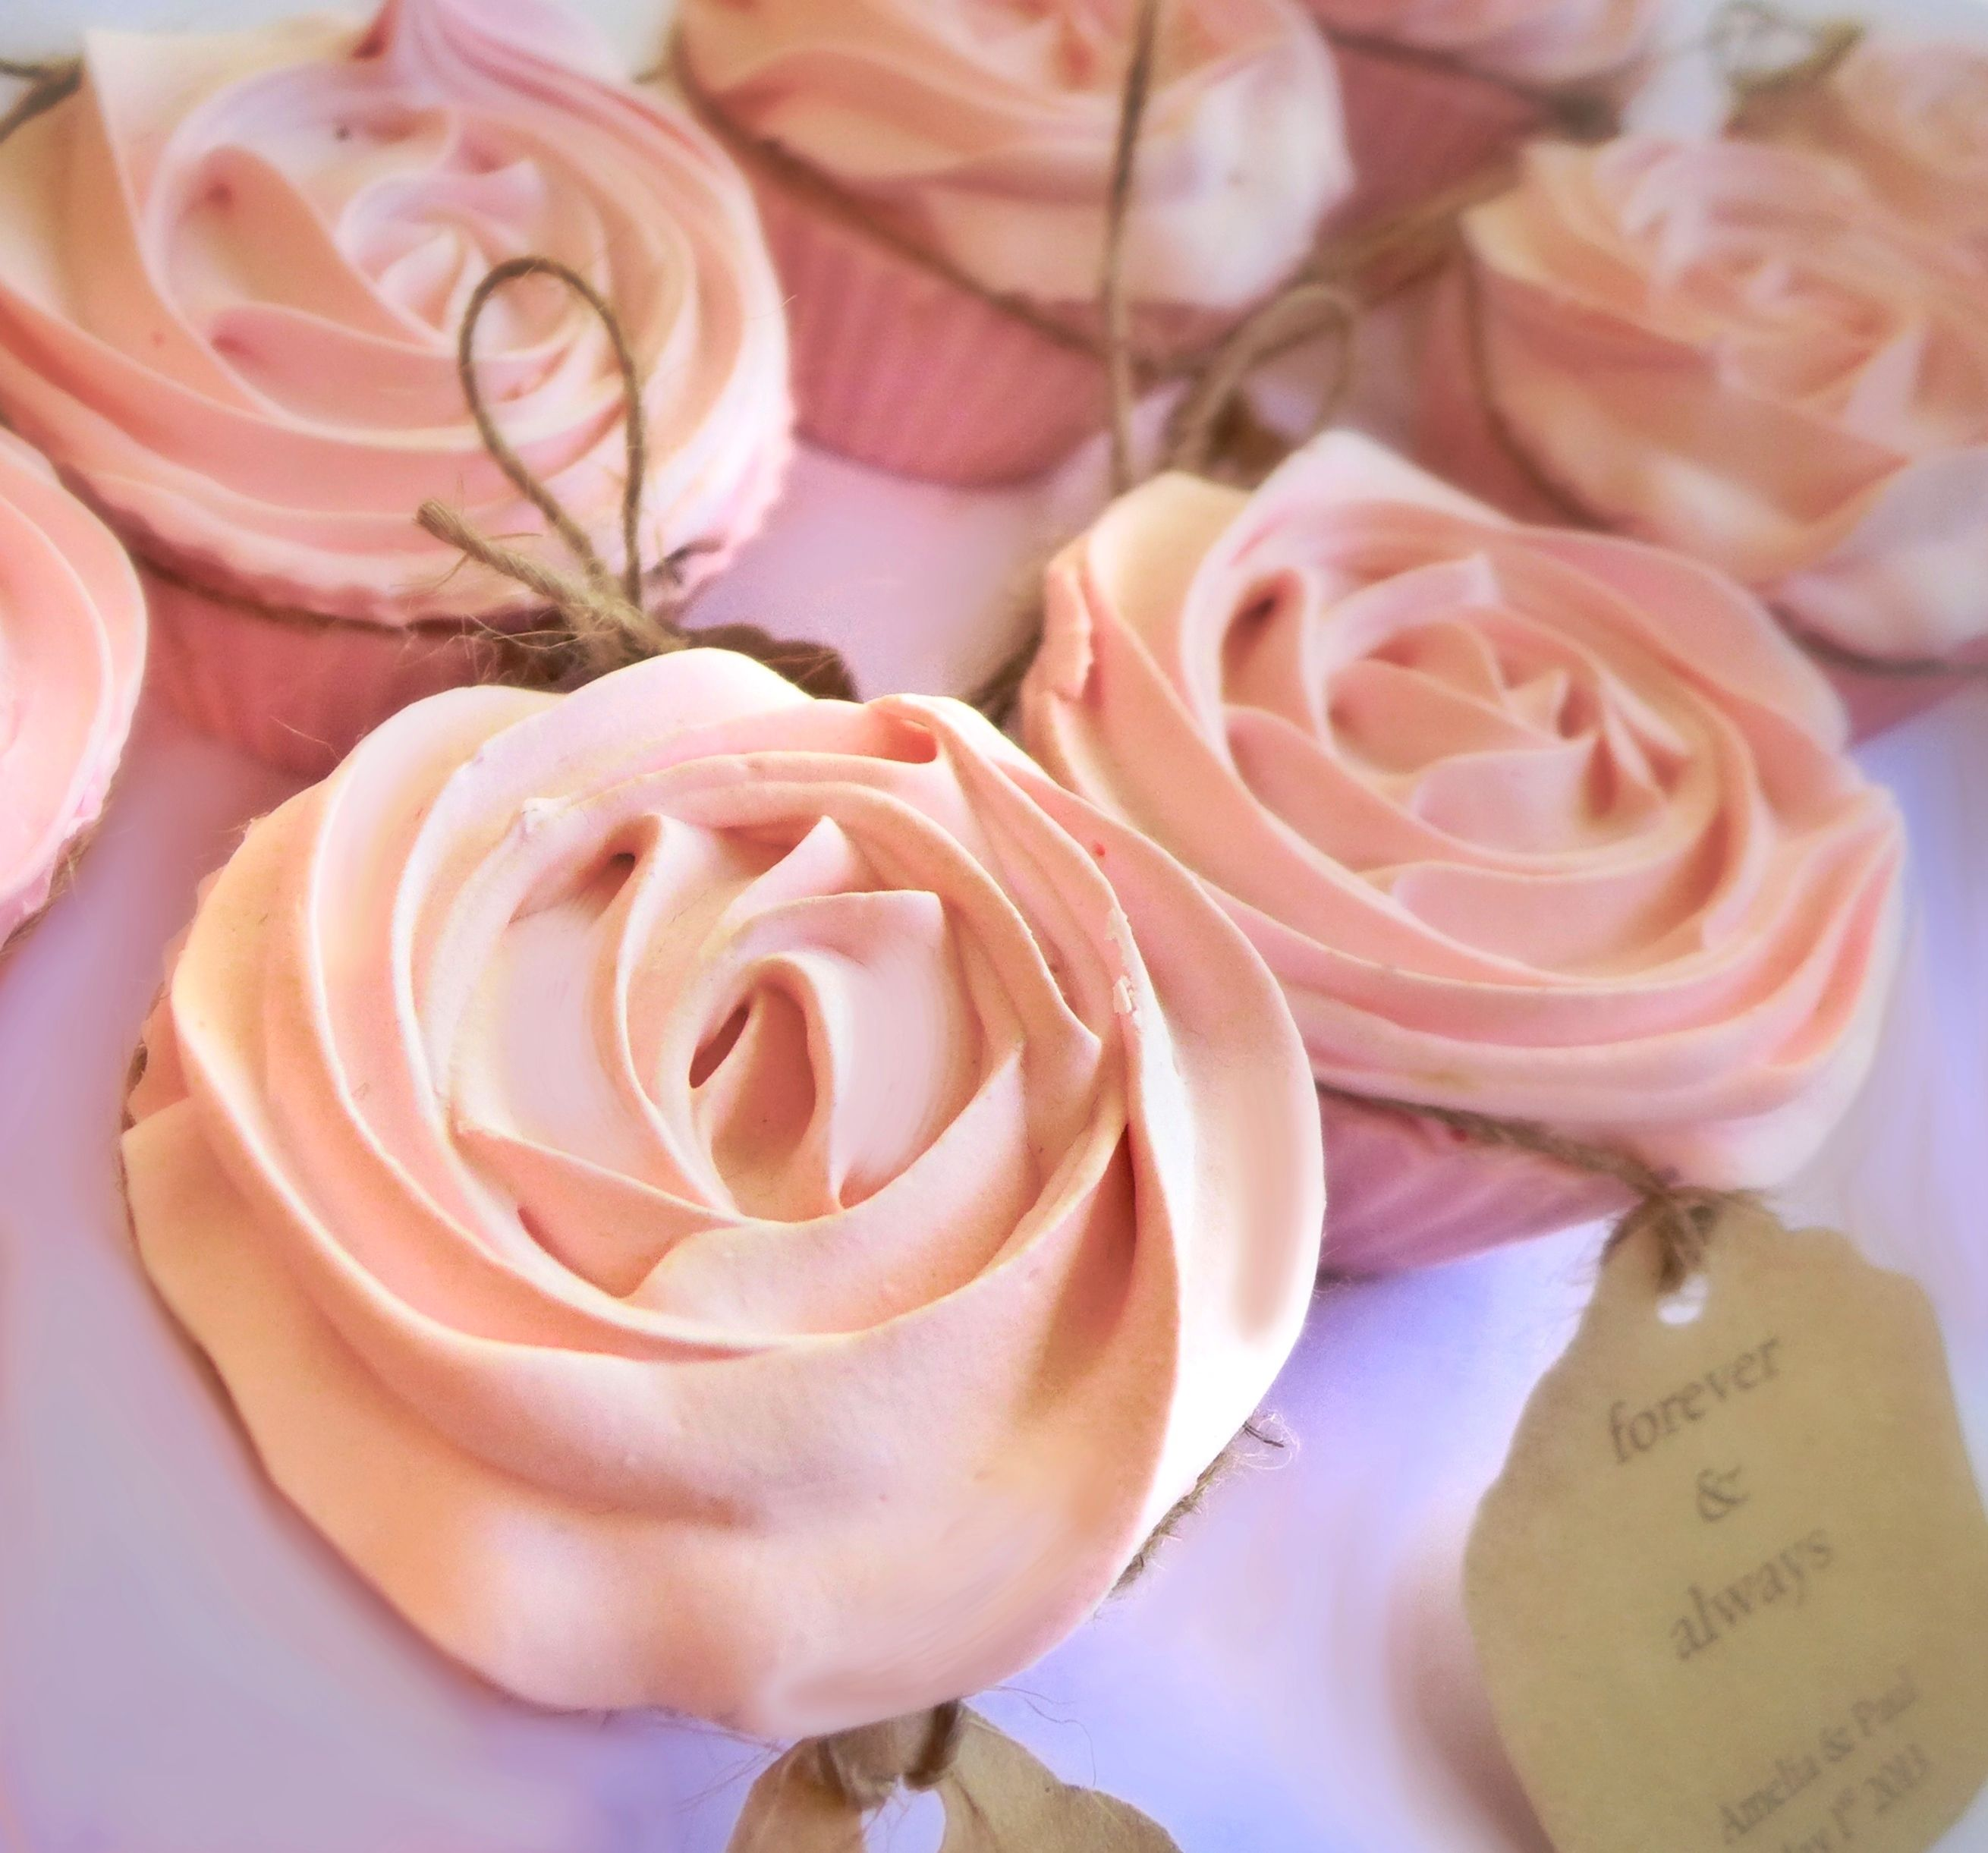 Wedding bonbonniere rose scented soaps, made by Cleanse With ...